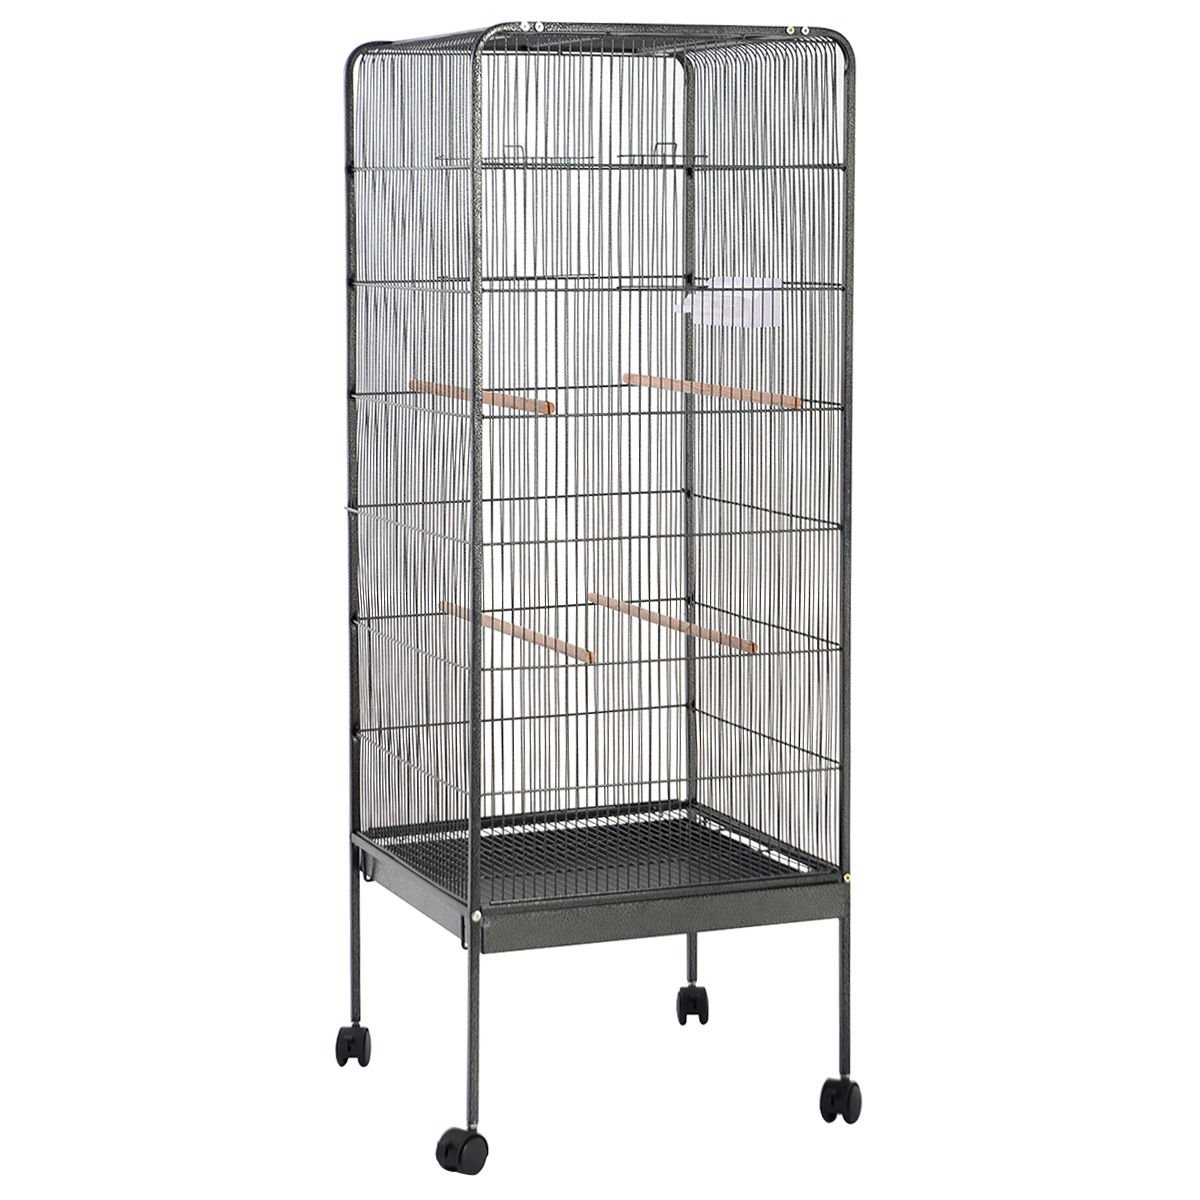 Giantex Large Parrot Bird Cage Play Top Pet Supplies w/Perch Stand Two Doors Iron PS6189